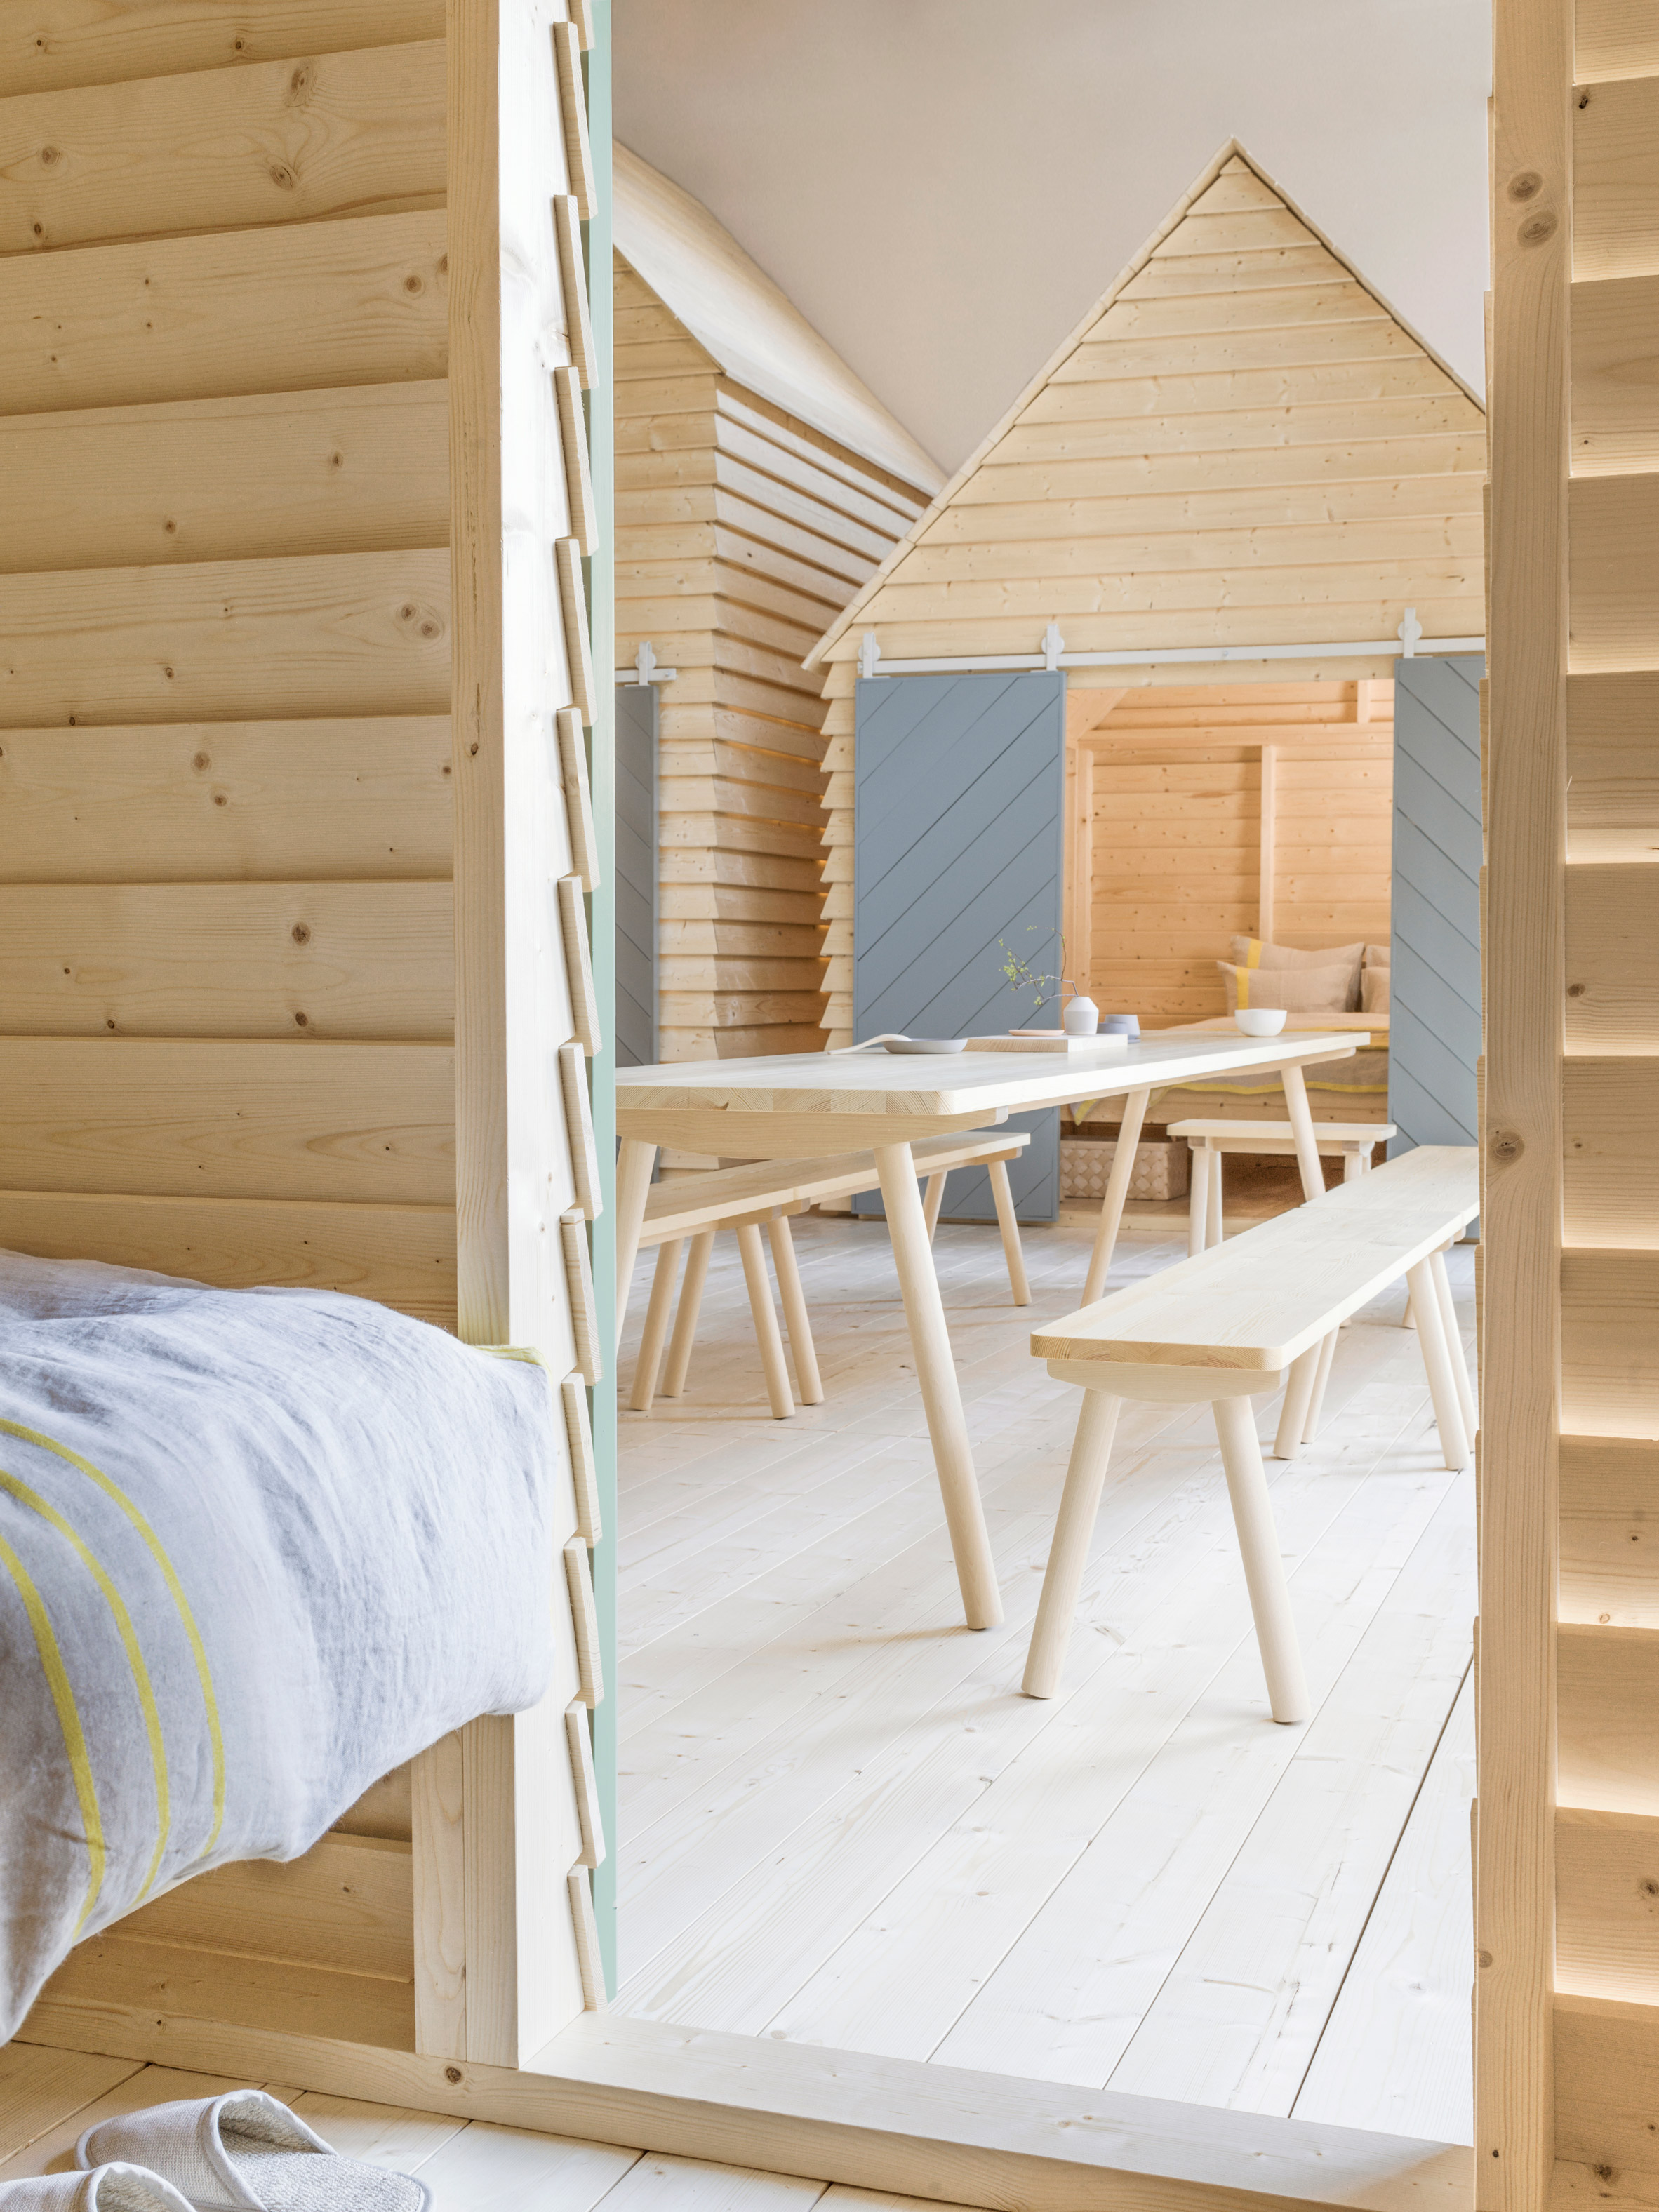 This new hotel in Paris consists of six adorable Finnish cottages